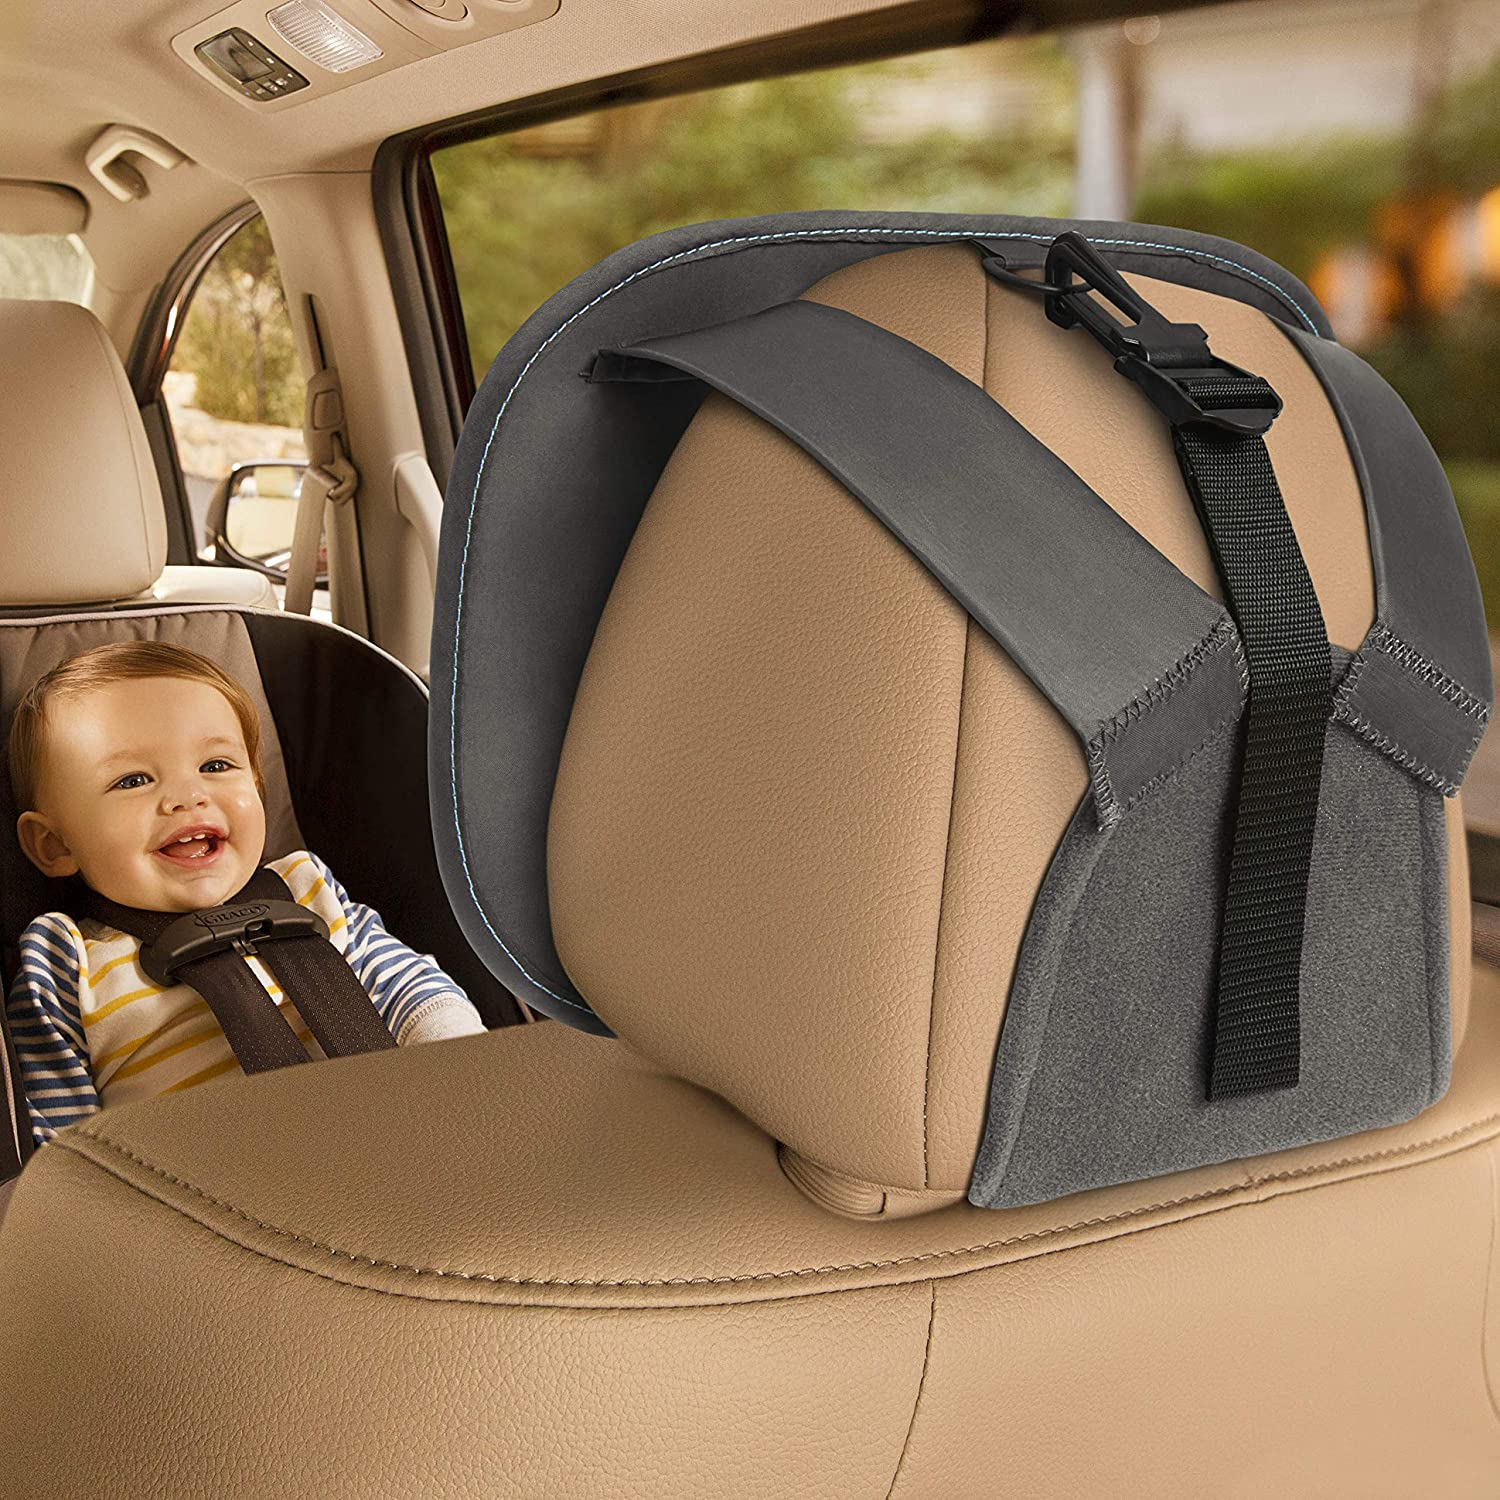 Grey Munchkin BRICA Baby In-Sight Auto Mirror for in Car Safety